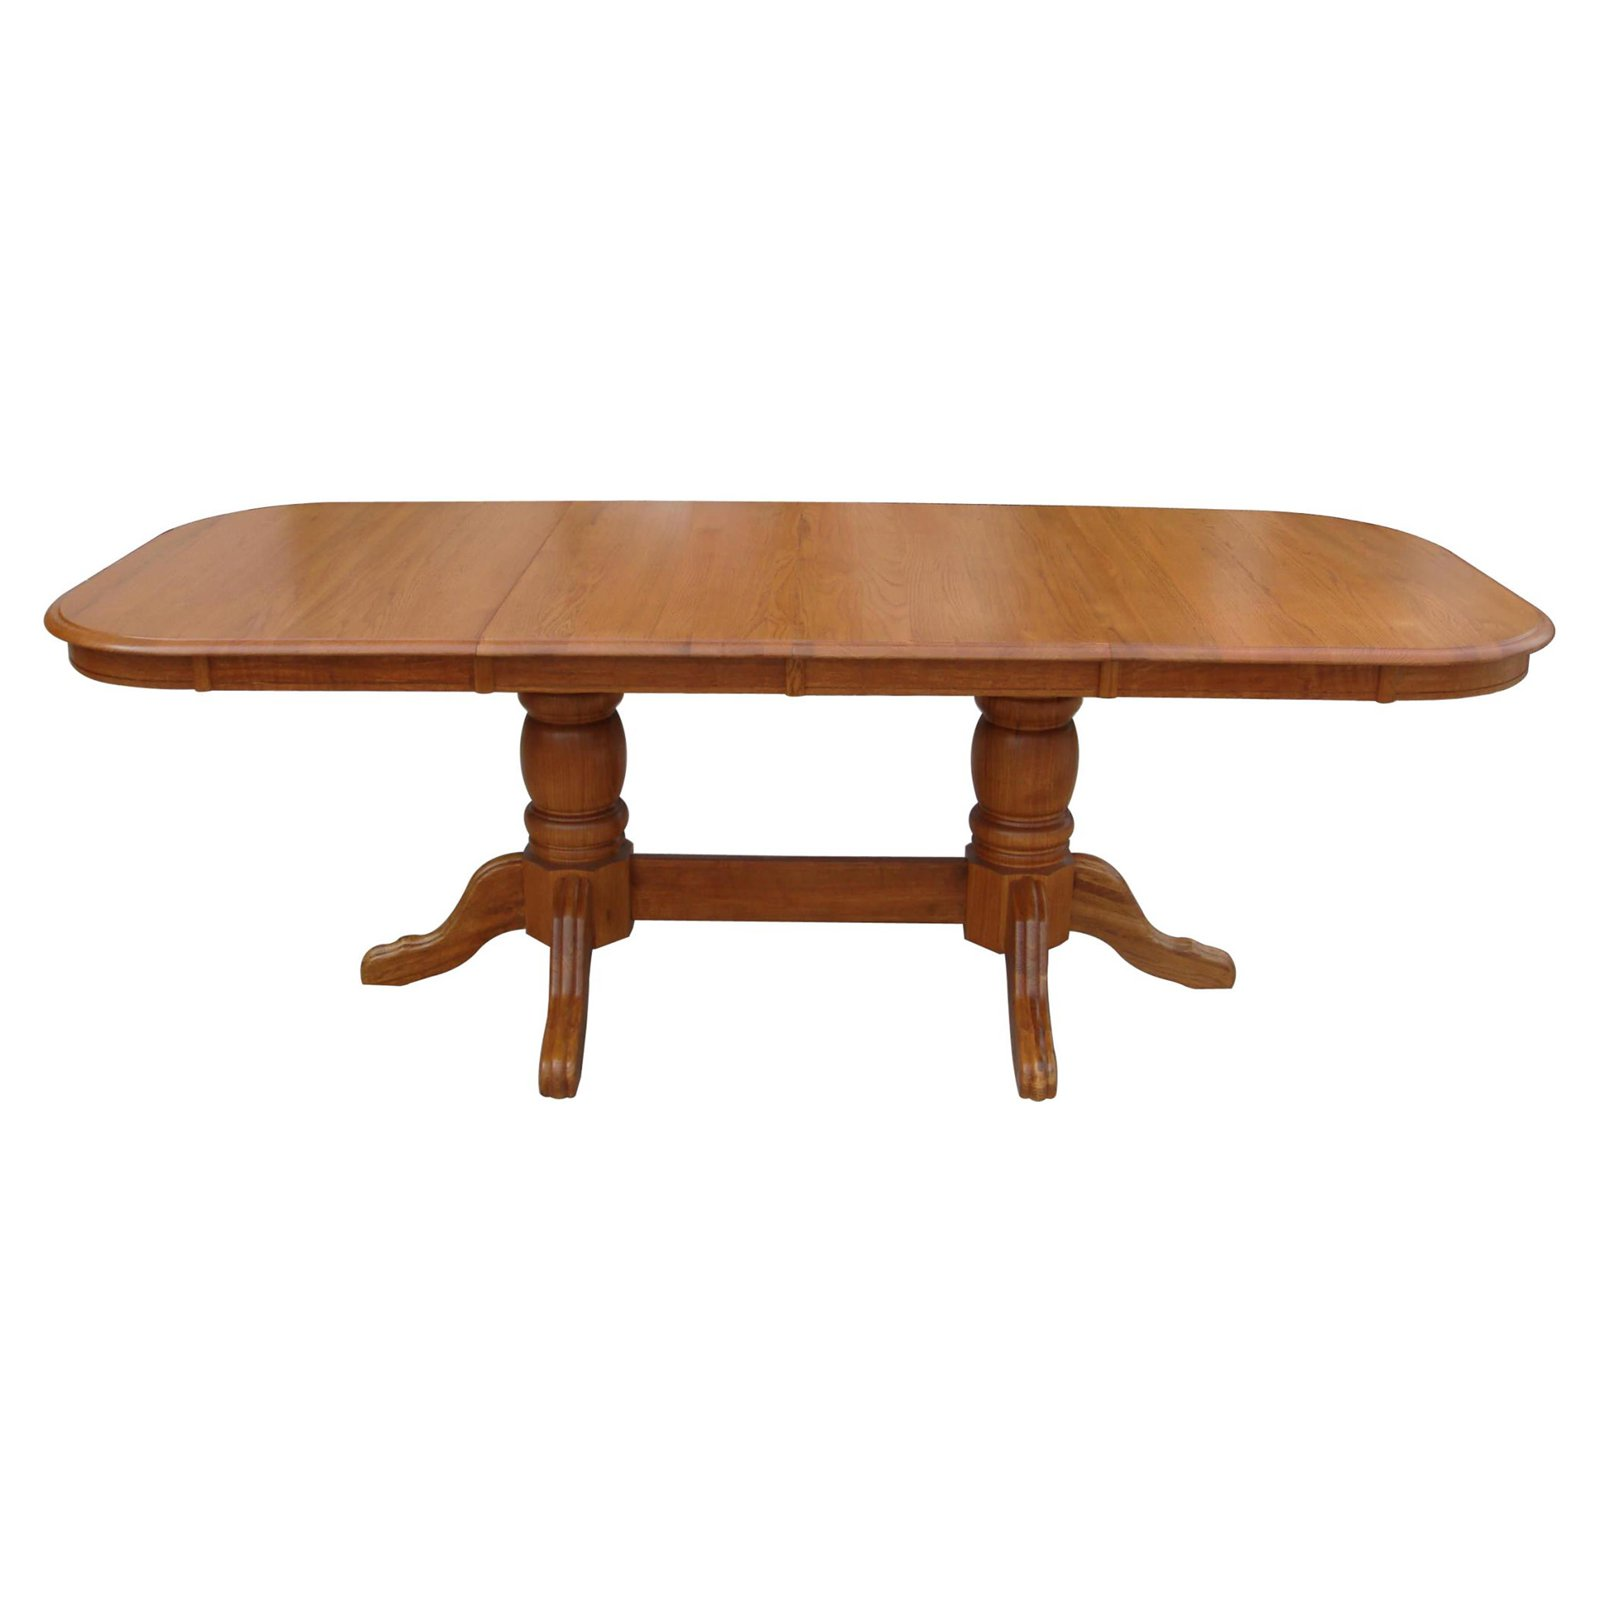 Chelsea Home Southernwood Double Pedestal Dining Table by Chelsea Home Furniture LLC.